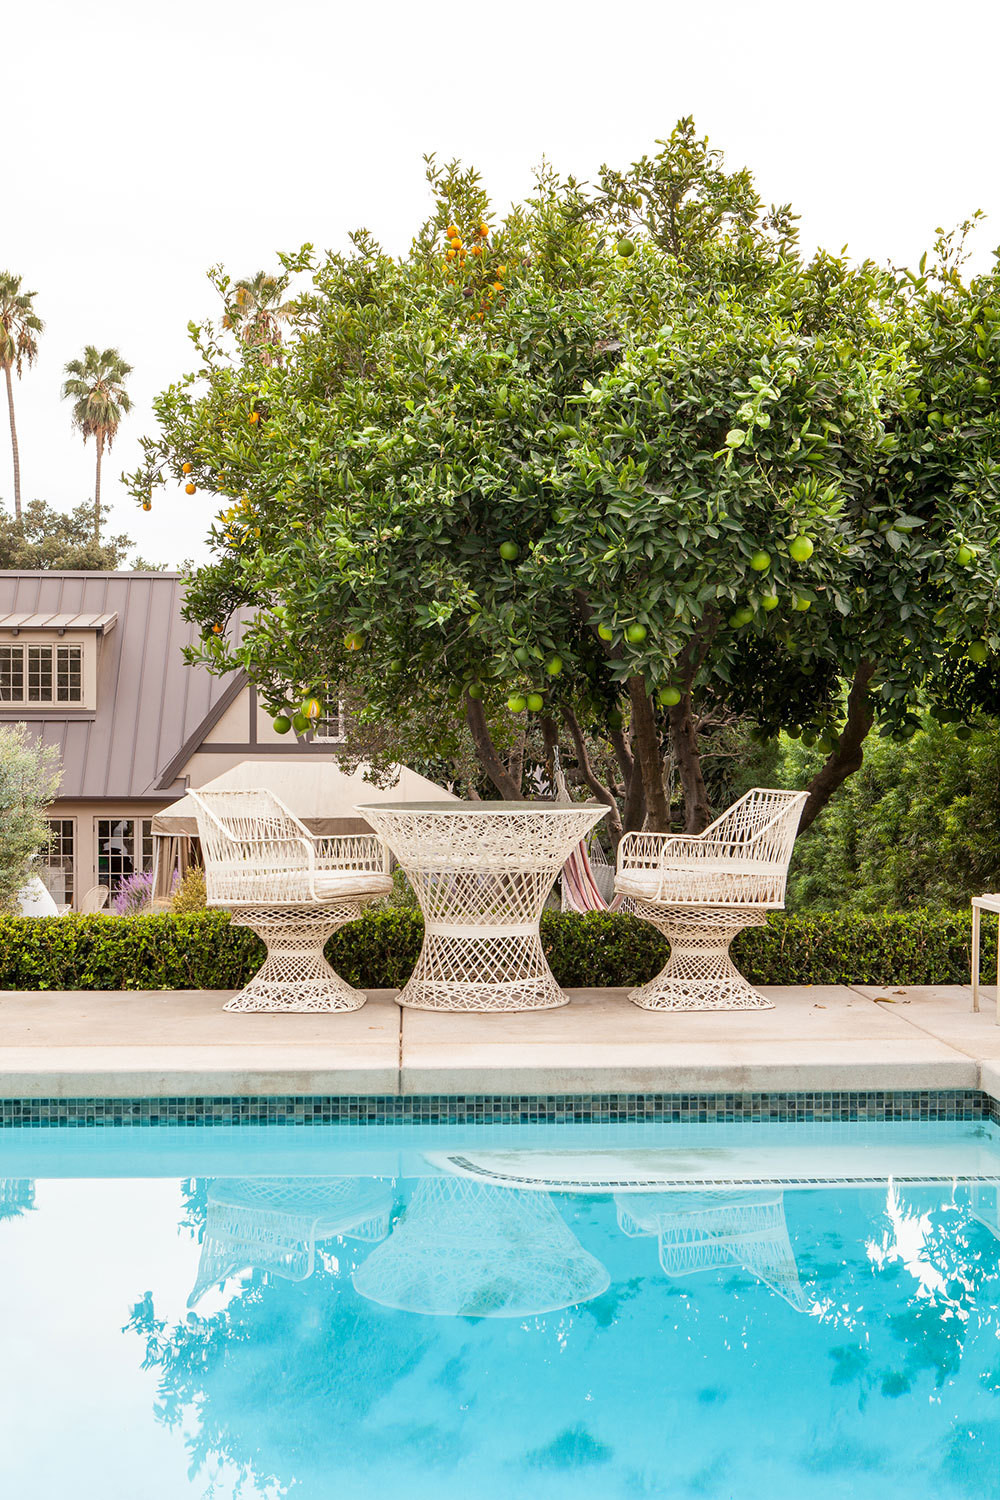 It wouldn't be a California home without a covetable pool area, which was added to the property during the second phase of renovations.